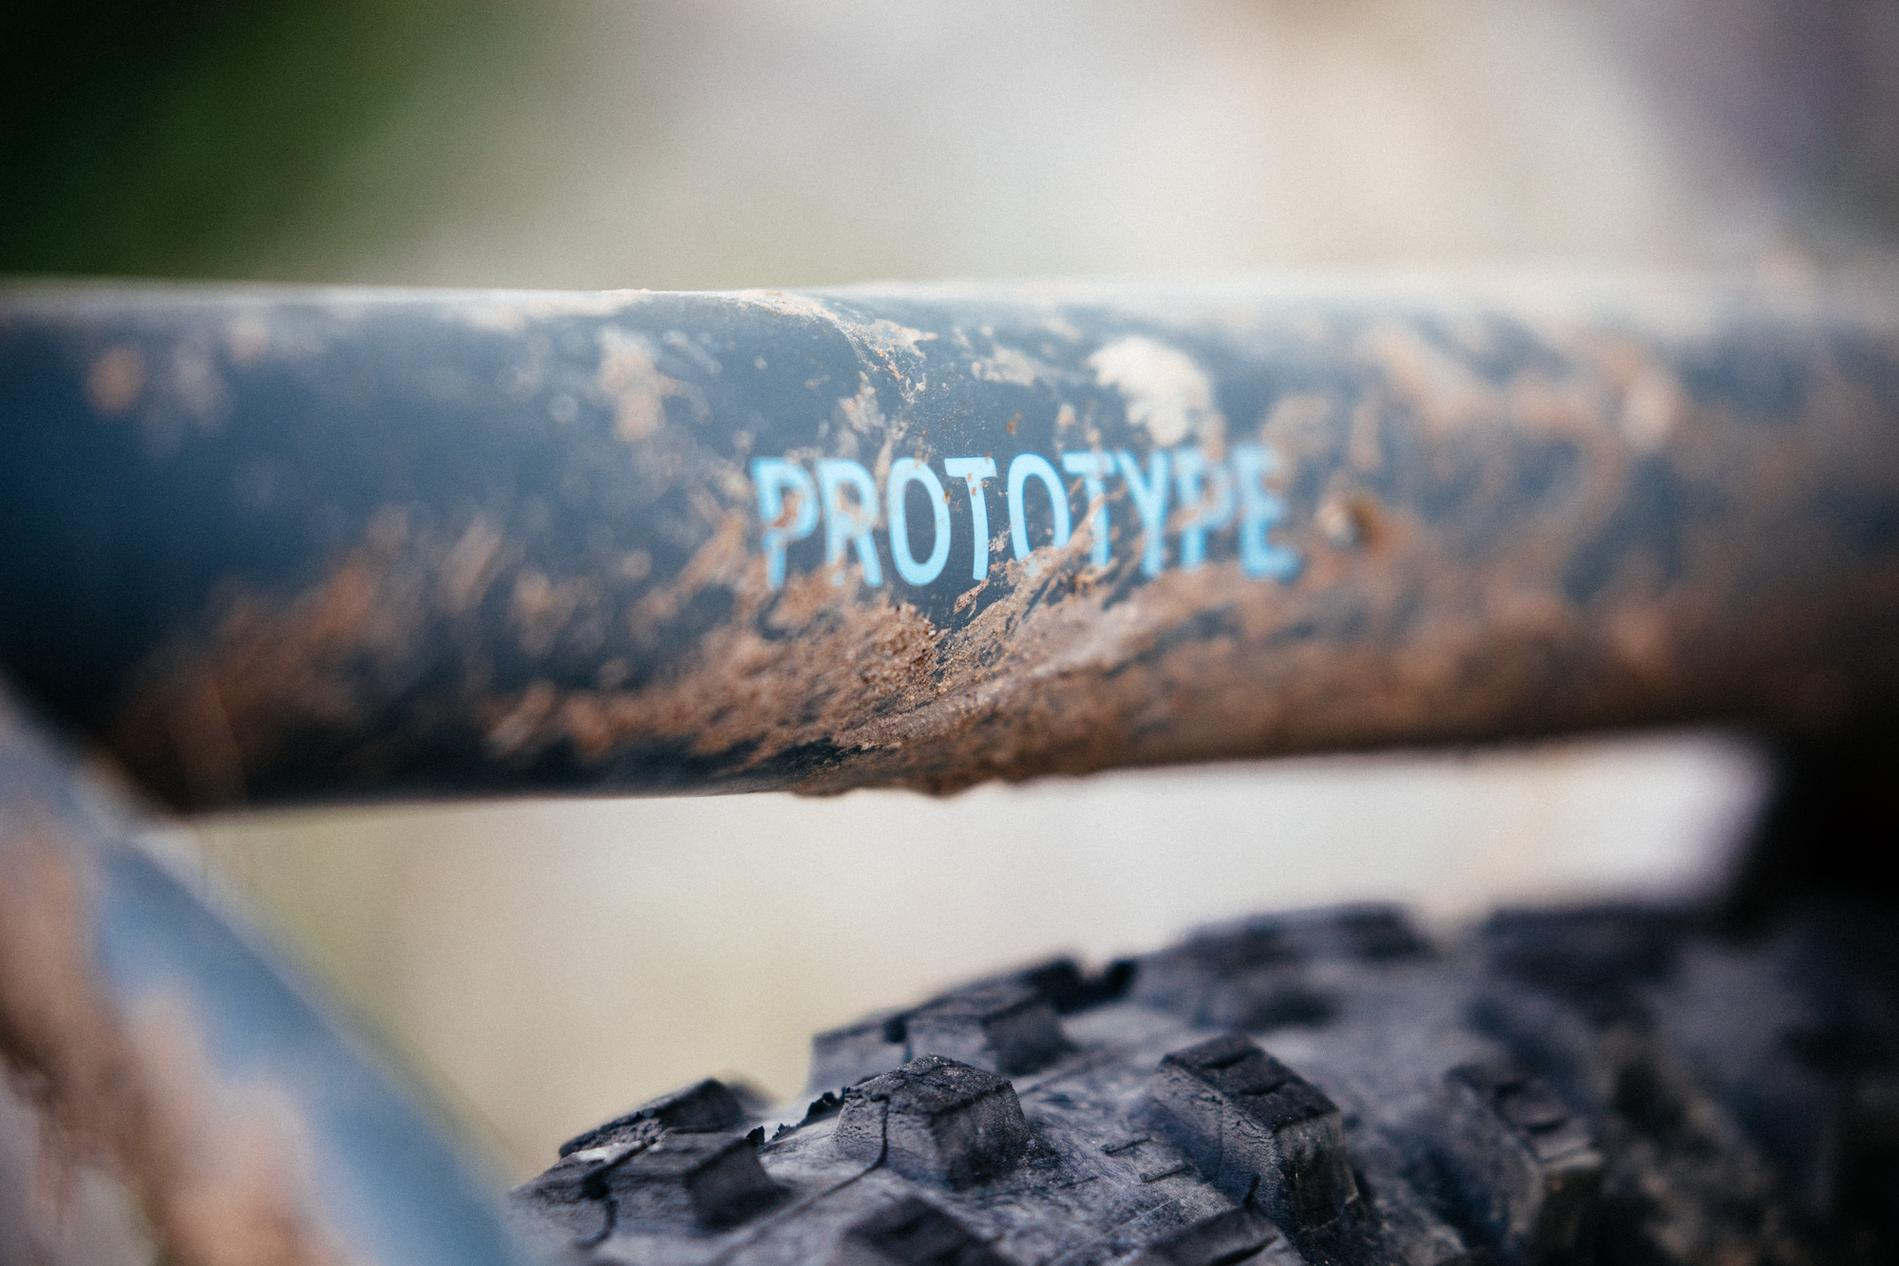 Tony's prototype we featured here on the site last month was lookin good and dirty!